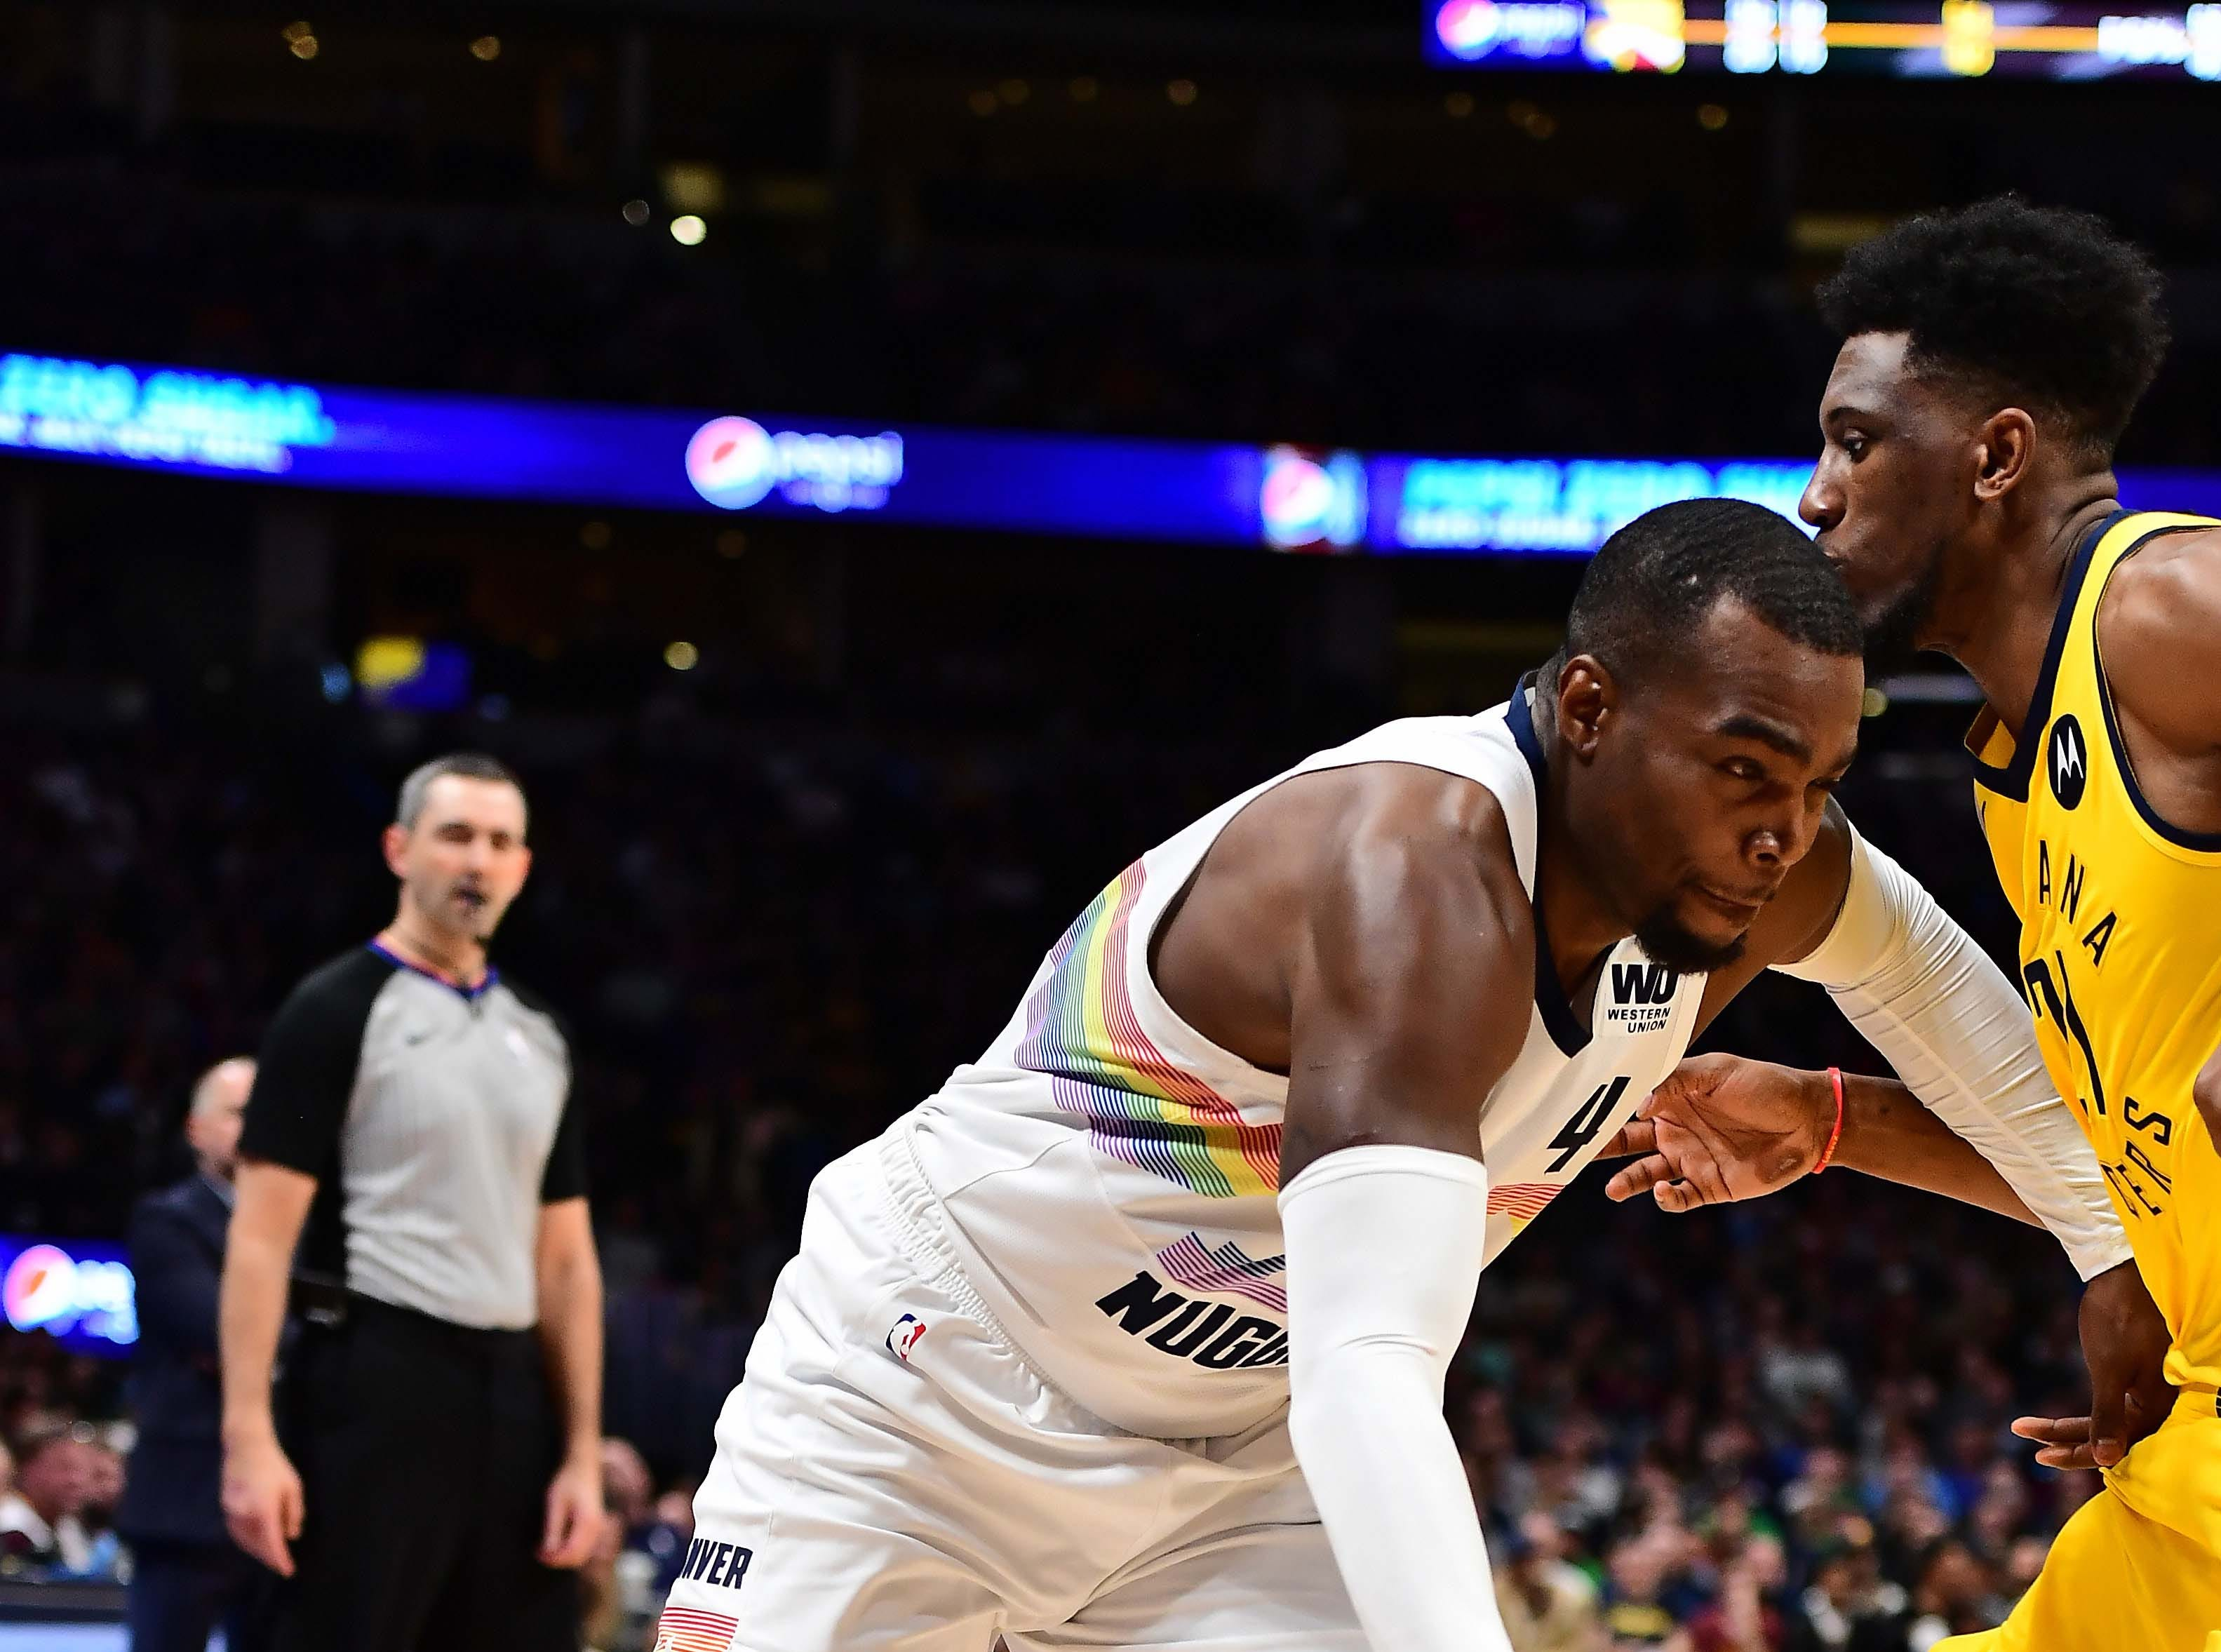 Mar 16, 2019; Denver, CO, USA; Denver Nuggets forward Paul Millsap (4) dribbles at Indiana Pacers forward Thaddeus Young (21) in the second quarter at the Pepsi Center. Mandatory Credit: Ron Chenoy-USA TODAY Sports